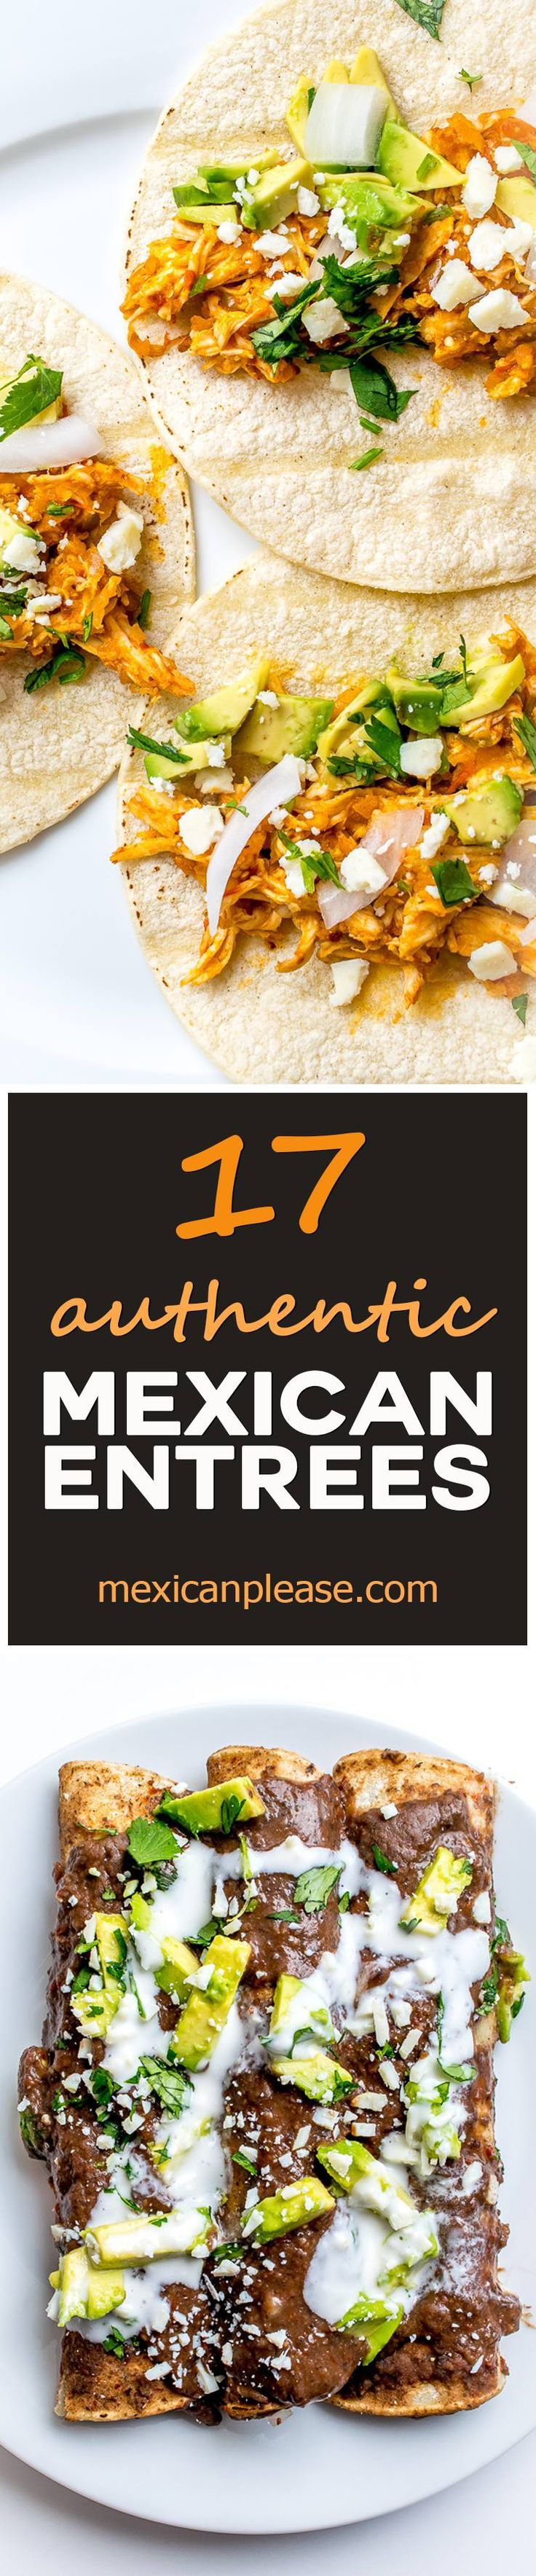 Ready for a kitchen swap? Here are 17 authentic Mexican entrees capable of instantly livening up any home kitchen. Scan through the list and mark down the two or three dishes that really catch your eye.  Includes recipes for enchiladas, mole, ceviche, tacos, and more!  mexicanplease.com